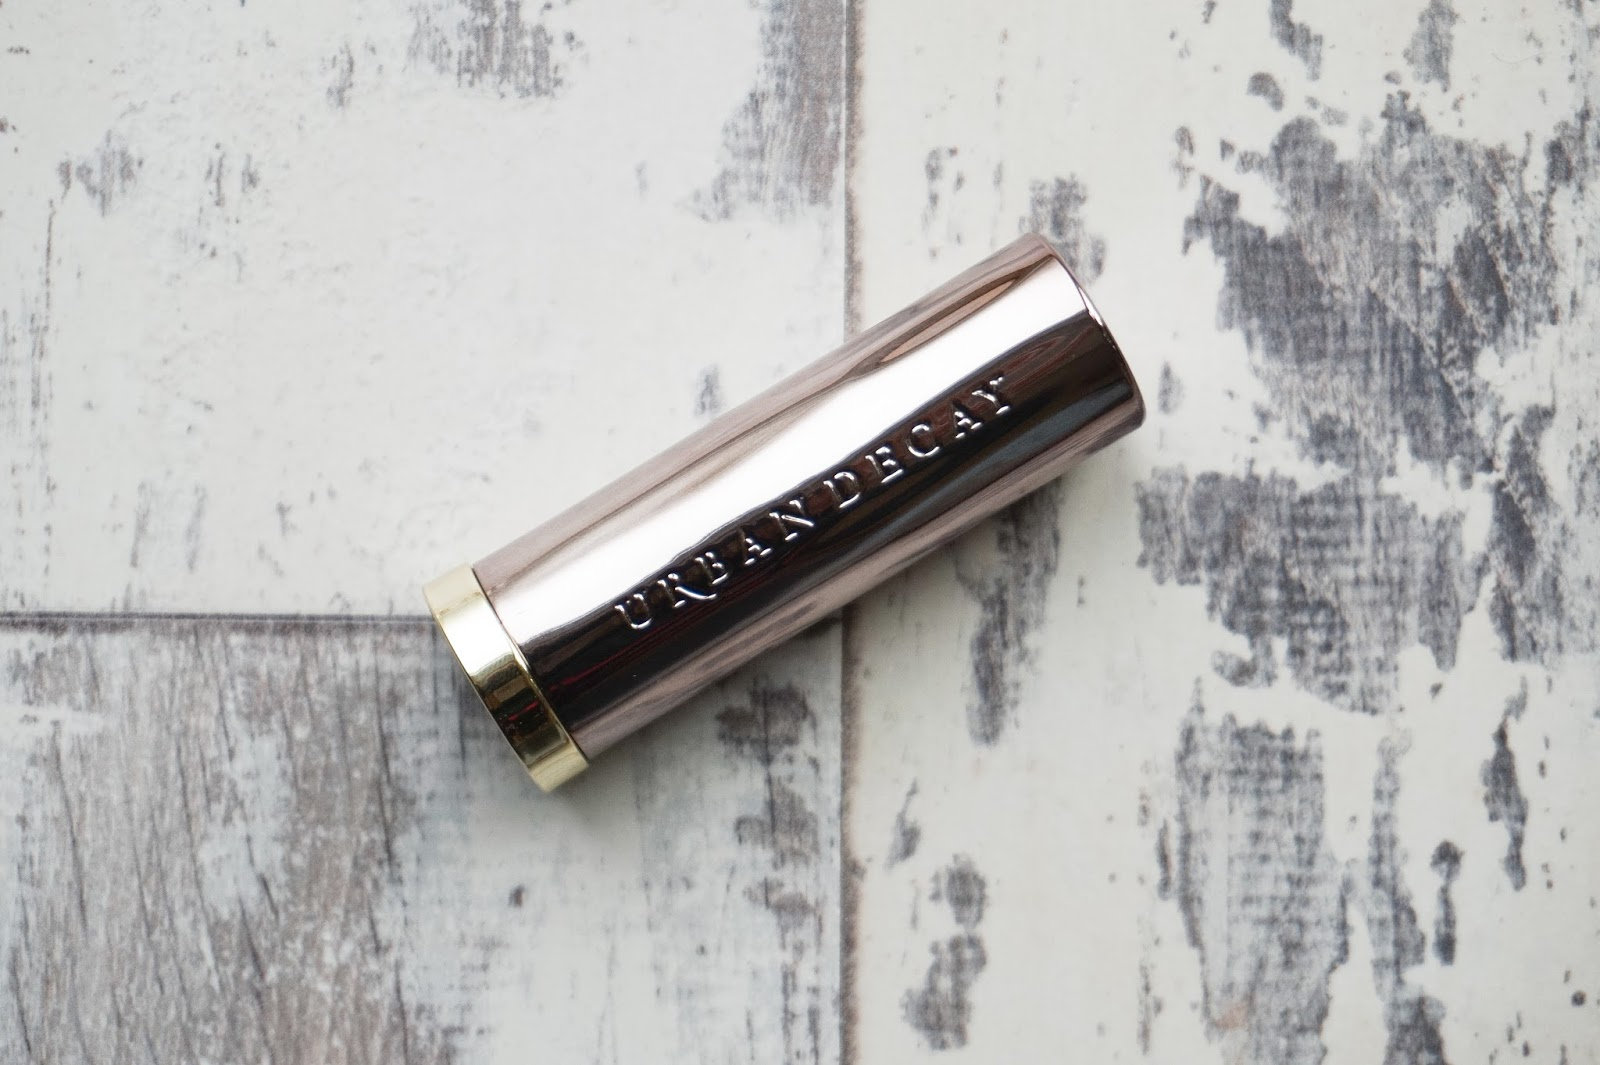 Urban Decay 1993 Dark Skin Black Skin Brown Skin Review Swatch Liquid Lipstick Comfort Matte Urban Decay Cosmetics Lipstick UK Blog Discoveries Of Self Natalie Kayo